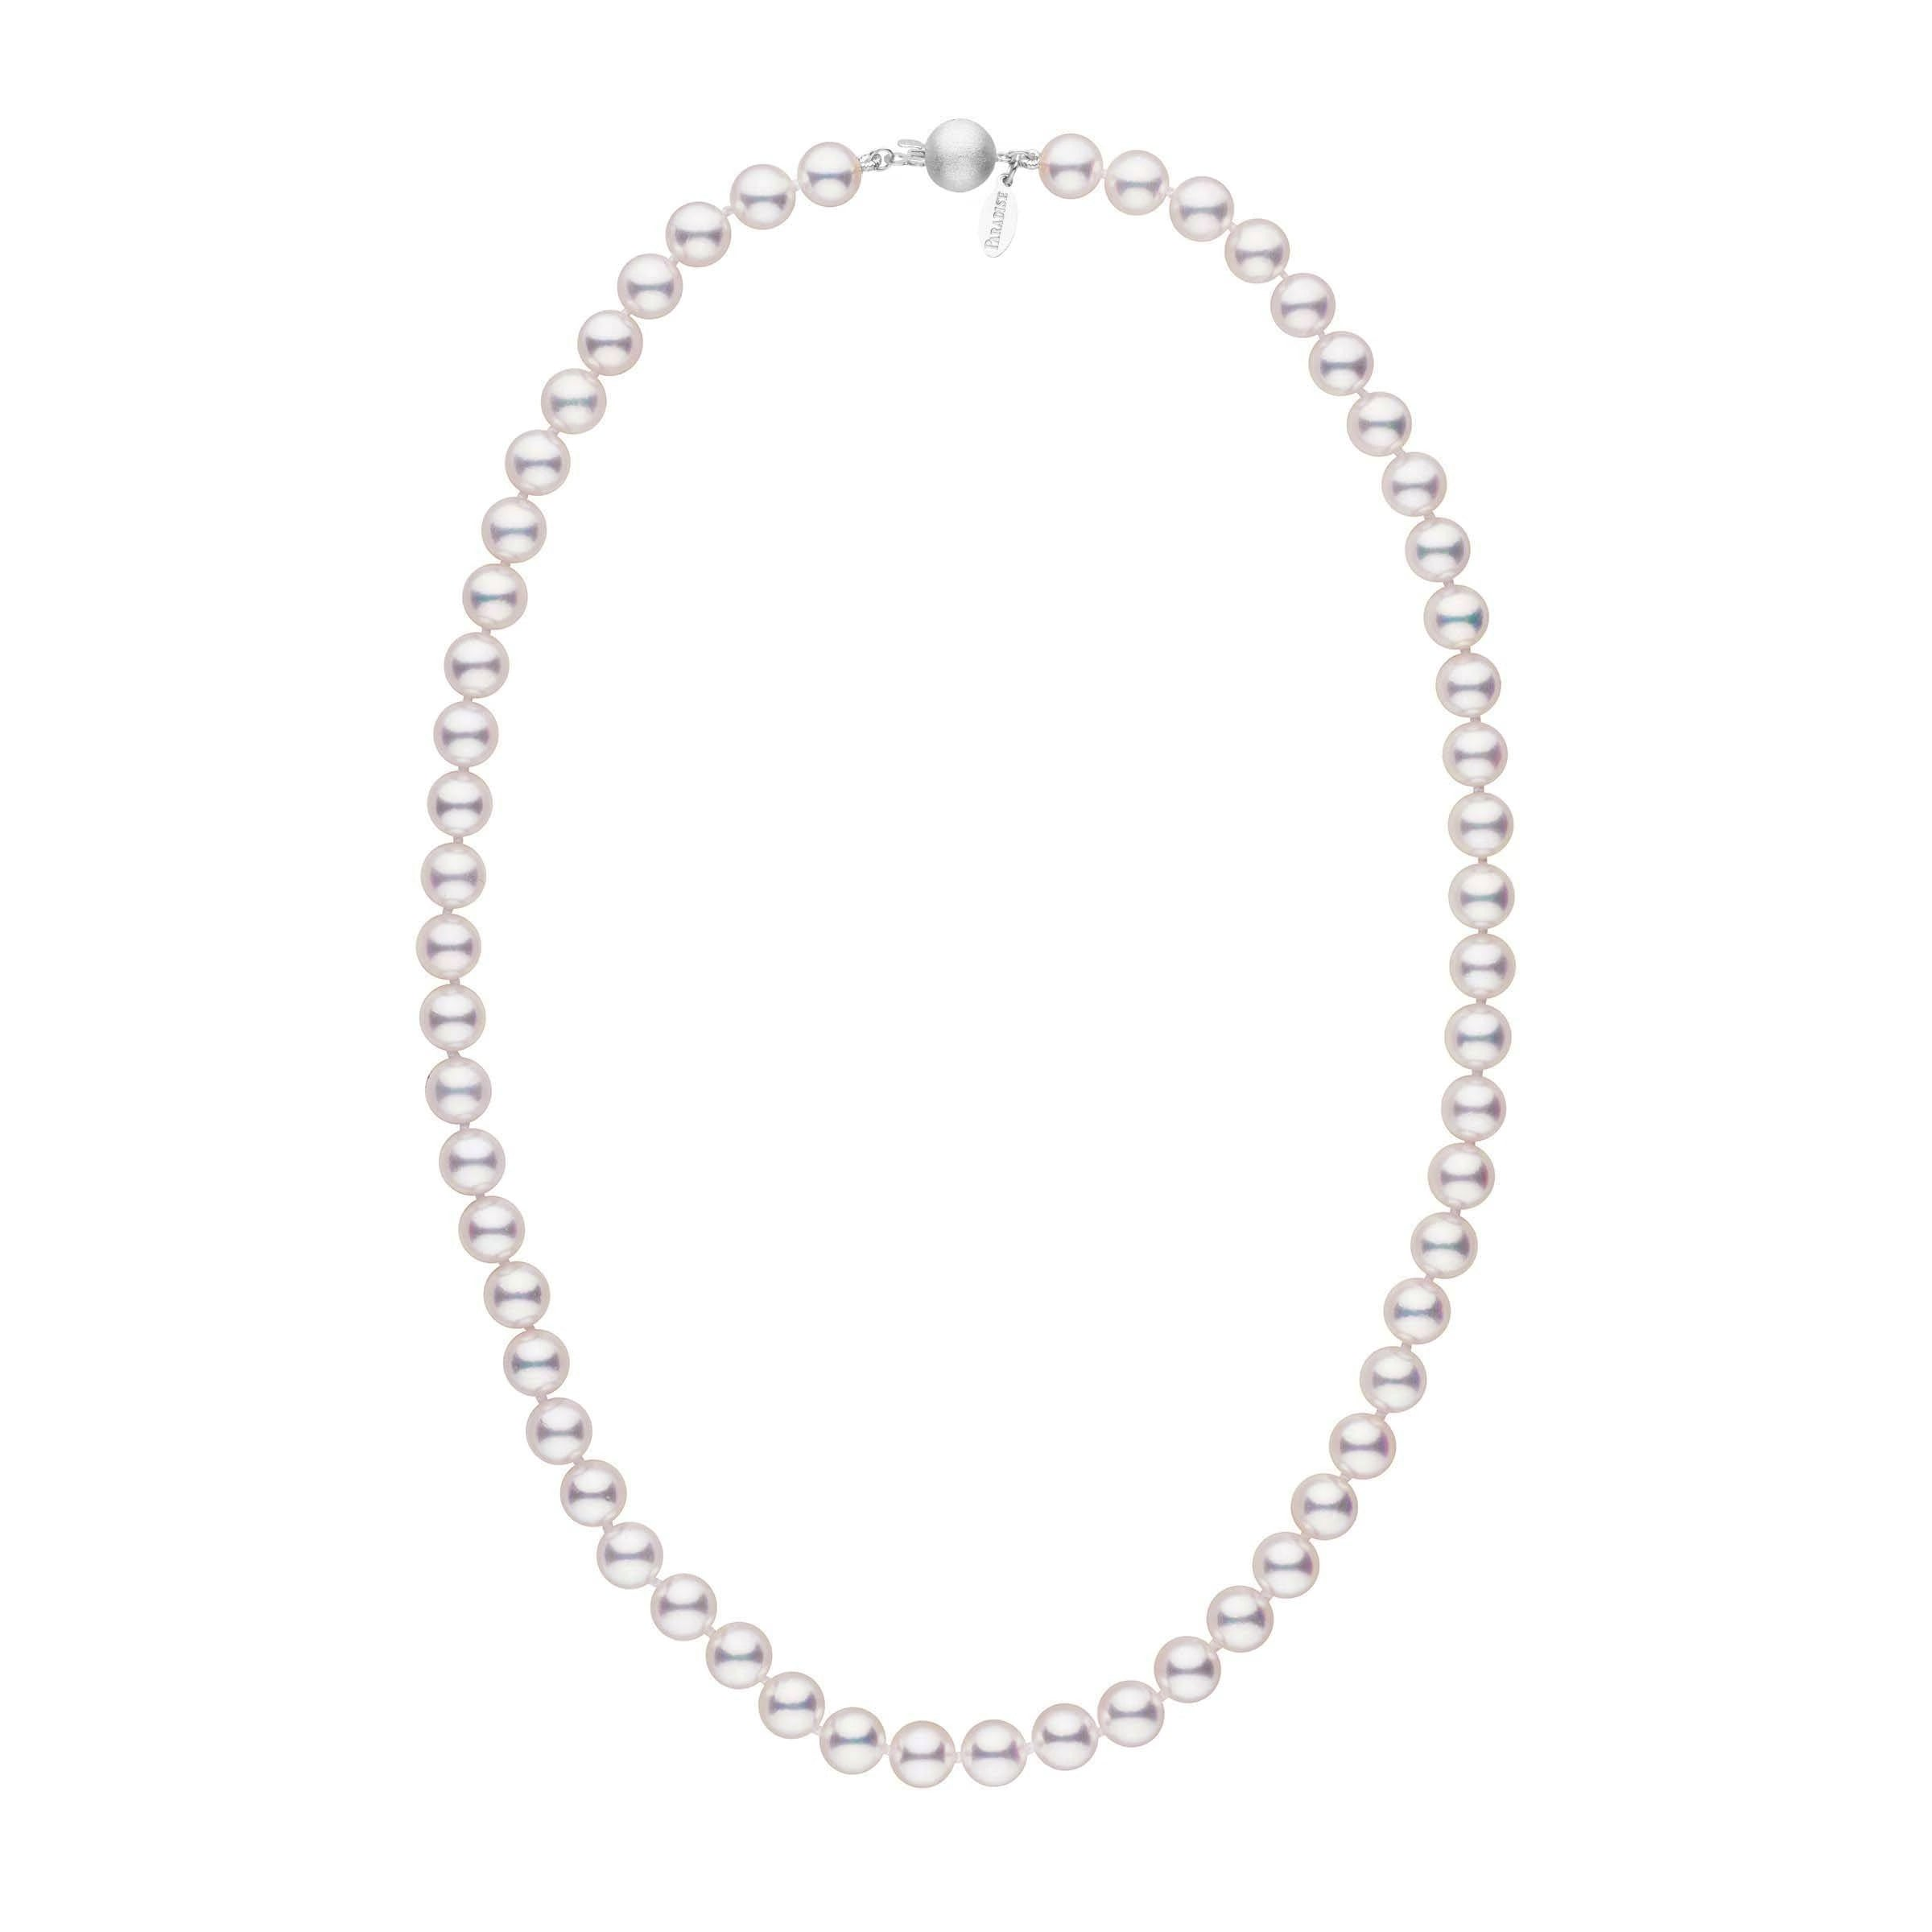 7.0-7.5 mm 18 Inch White Hanadama Akoya Pearl Necklace